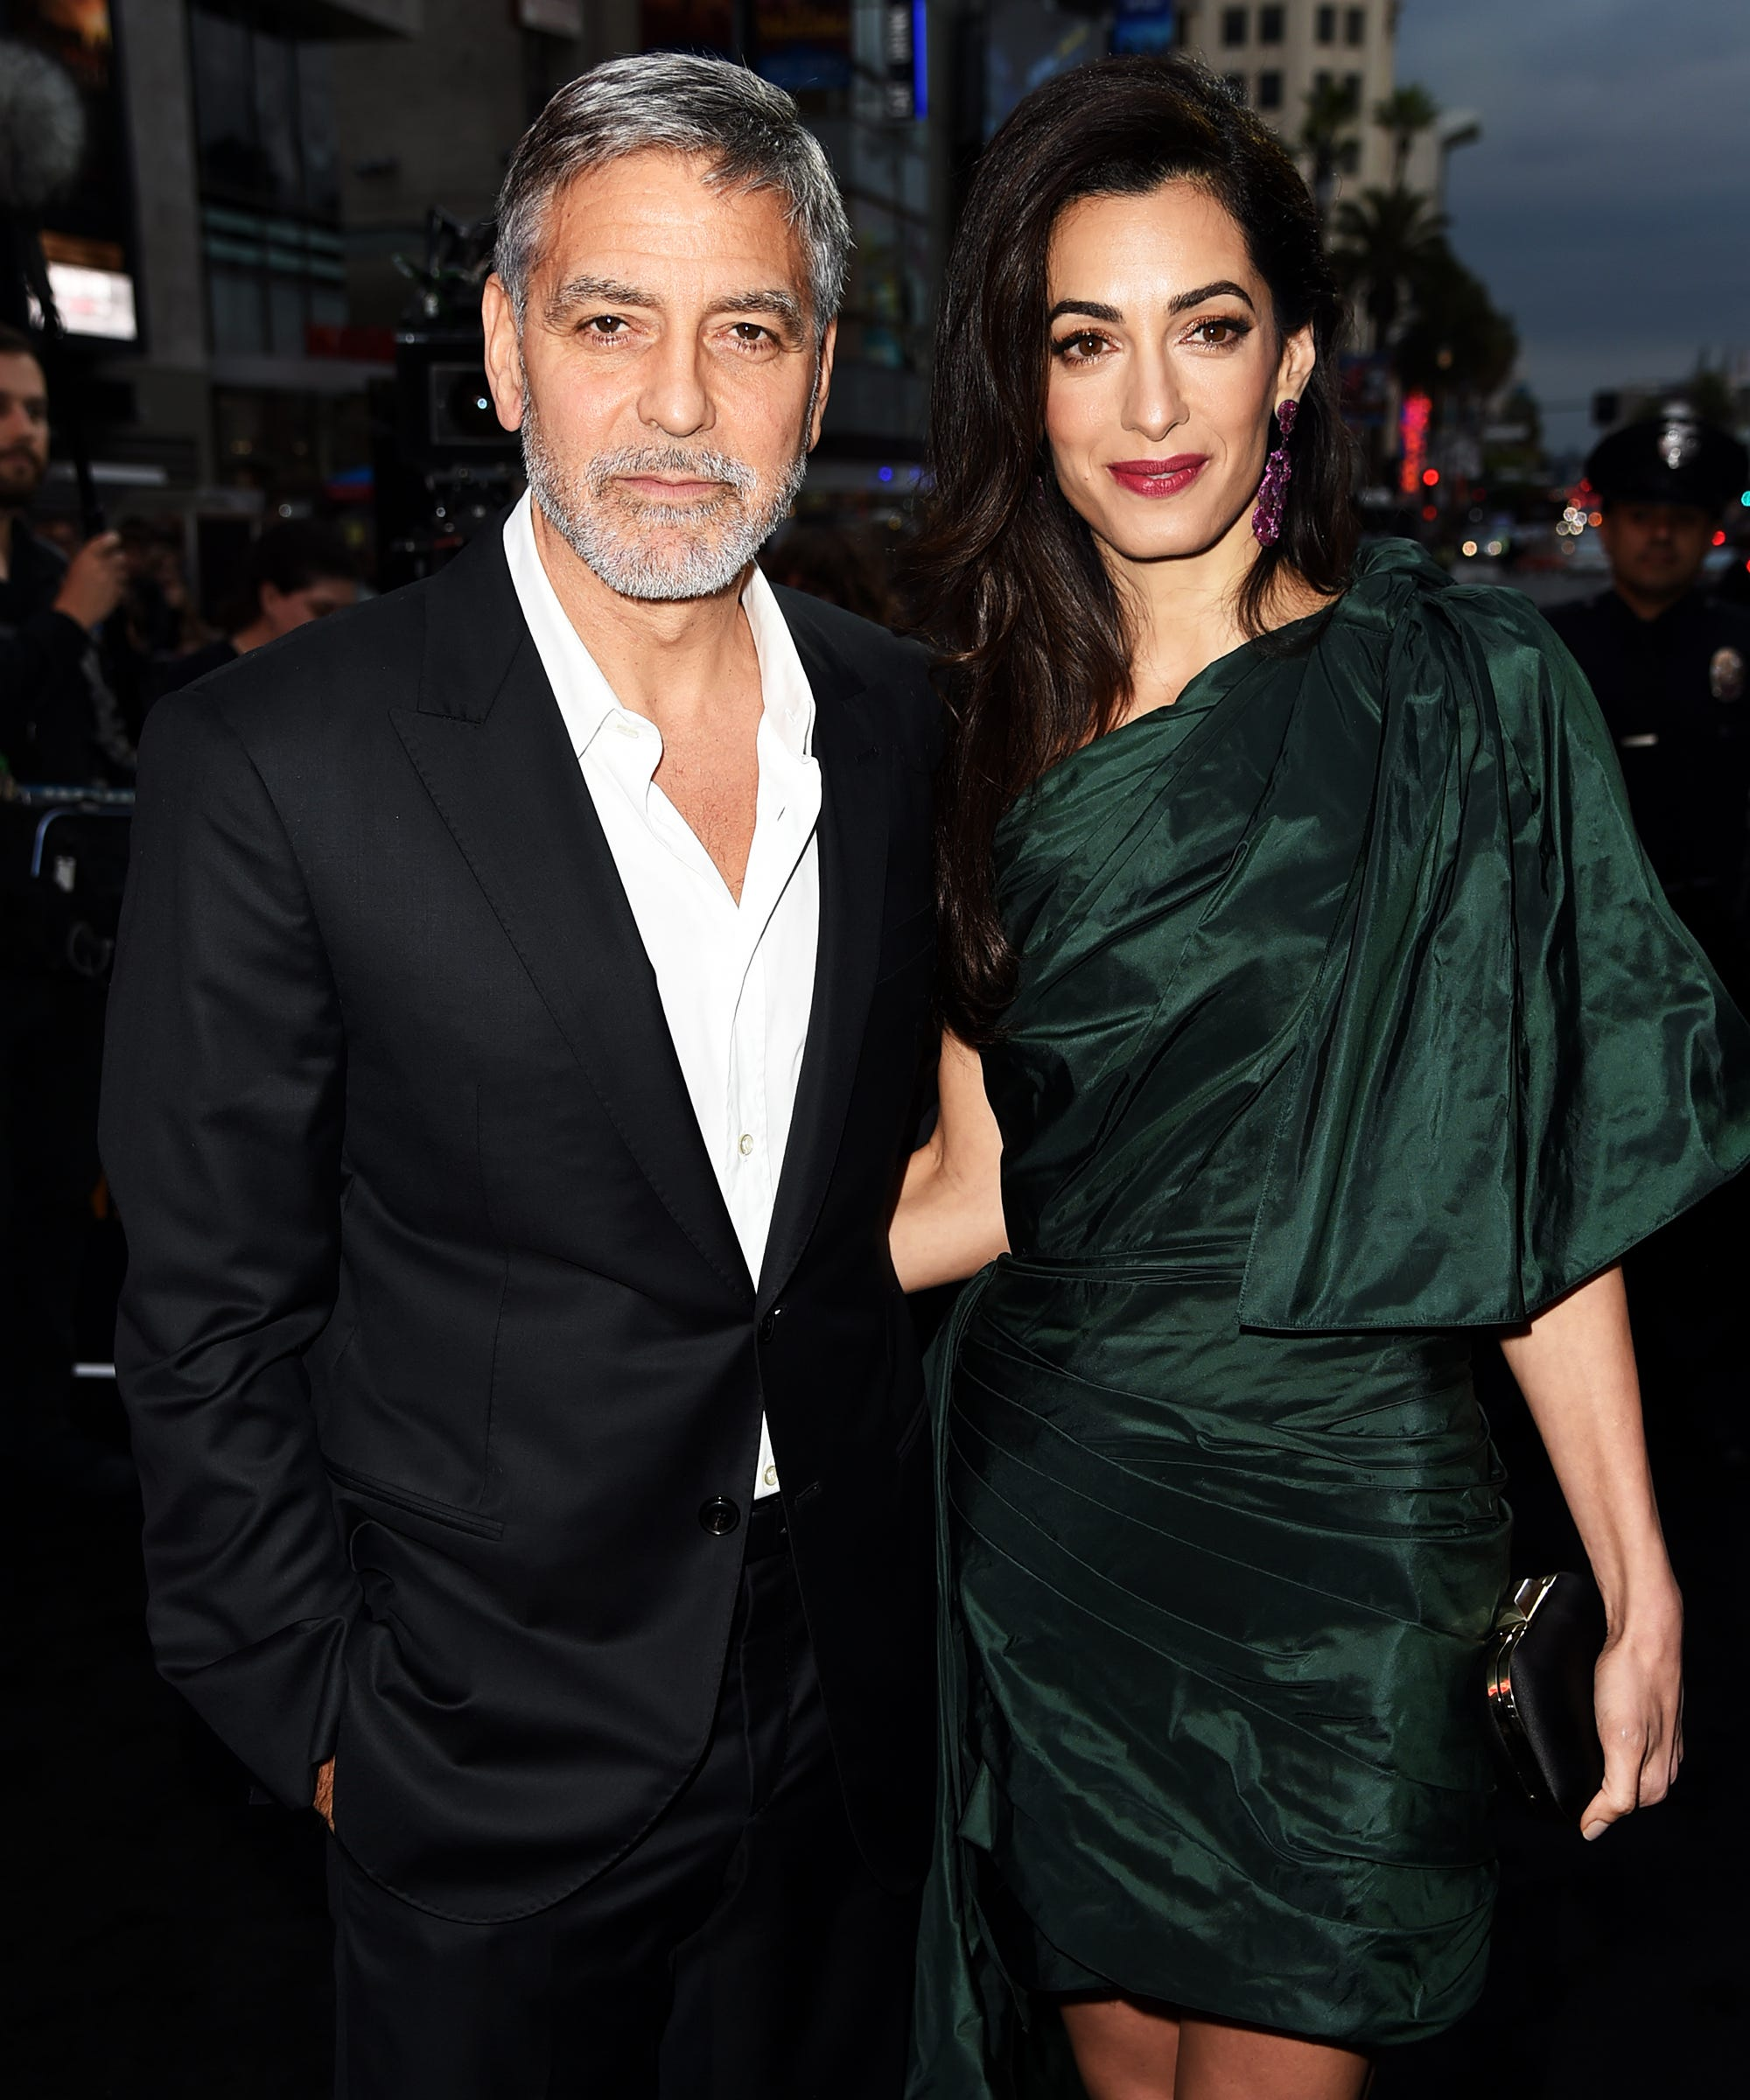 Amal Clooney Is Taking On ISIS — & Her Husband George Has One Big Concern